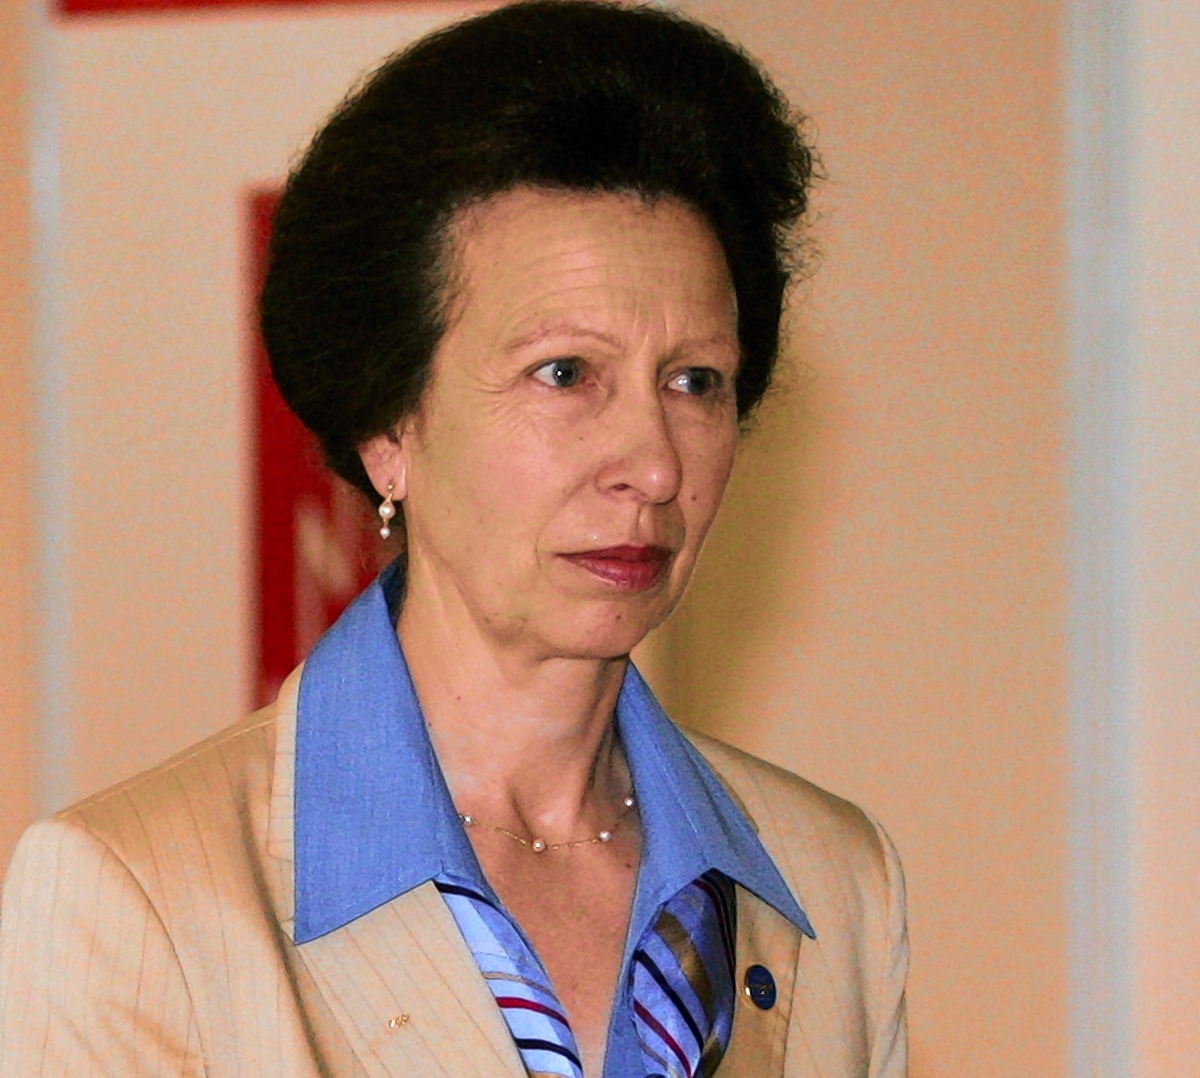 Canal boat trip for Princess Royal during Devizes visit